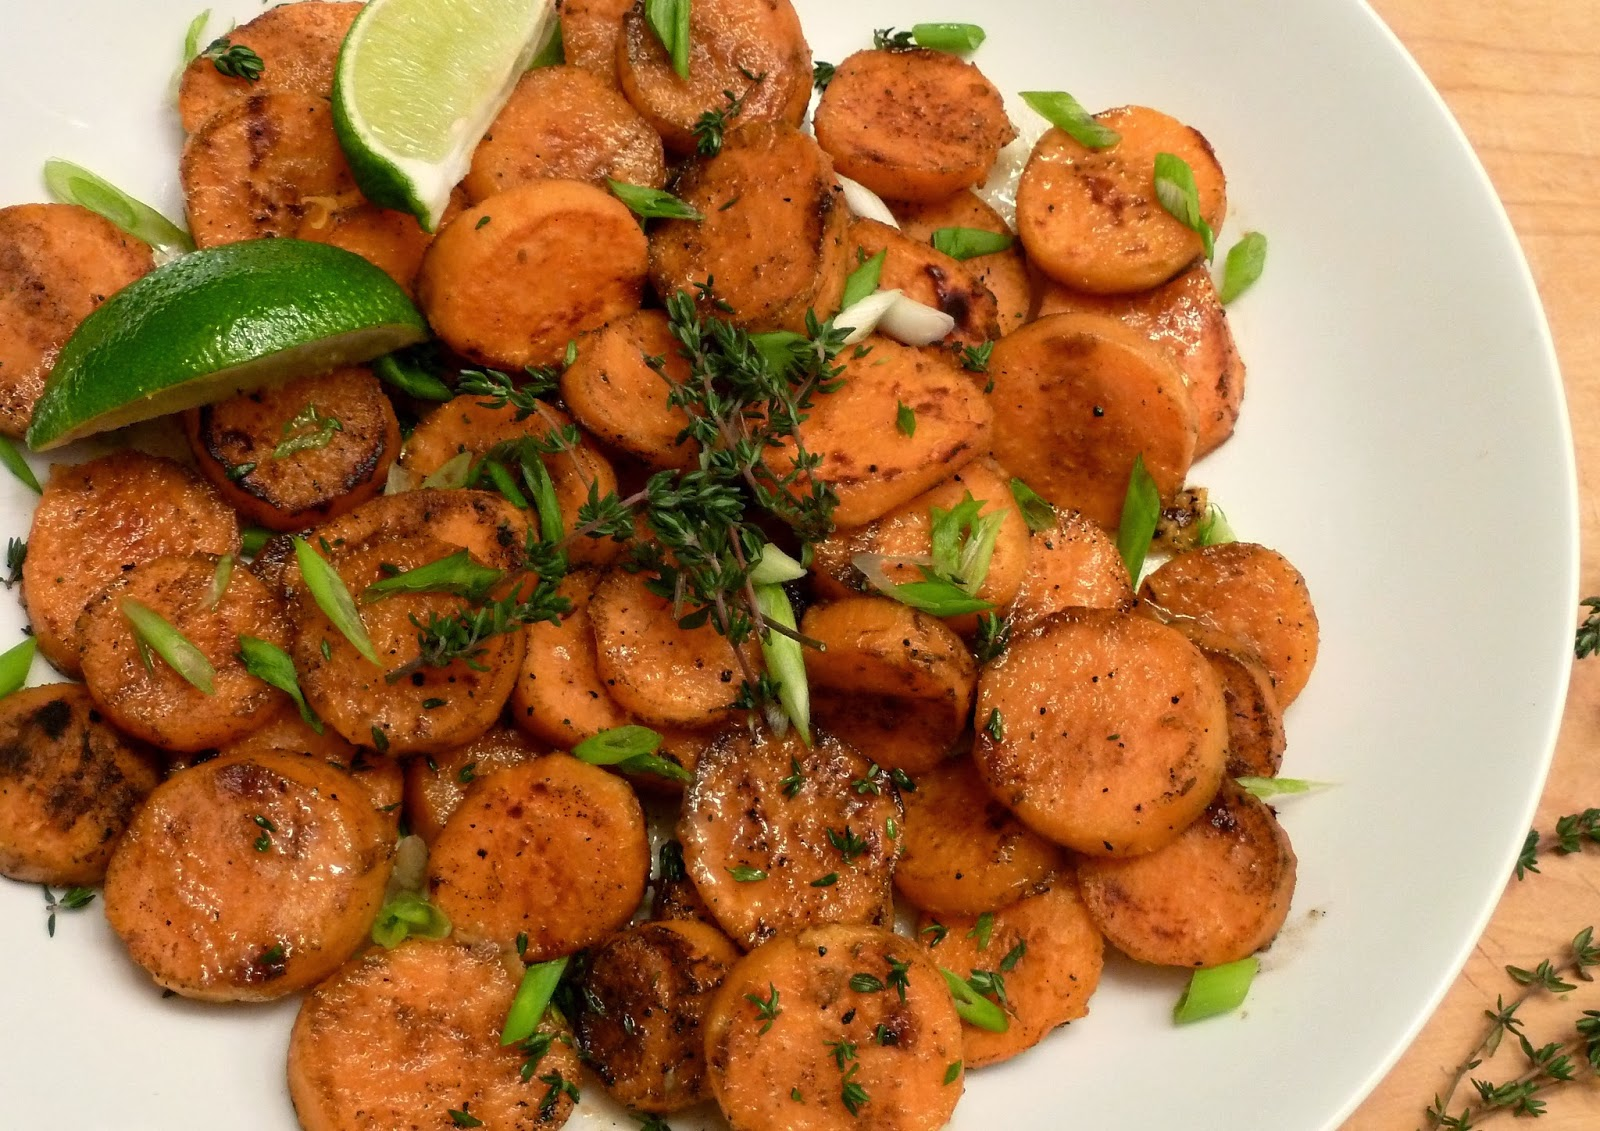 Cracked Pepper: Grilled Sweet Potatoes